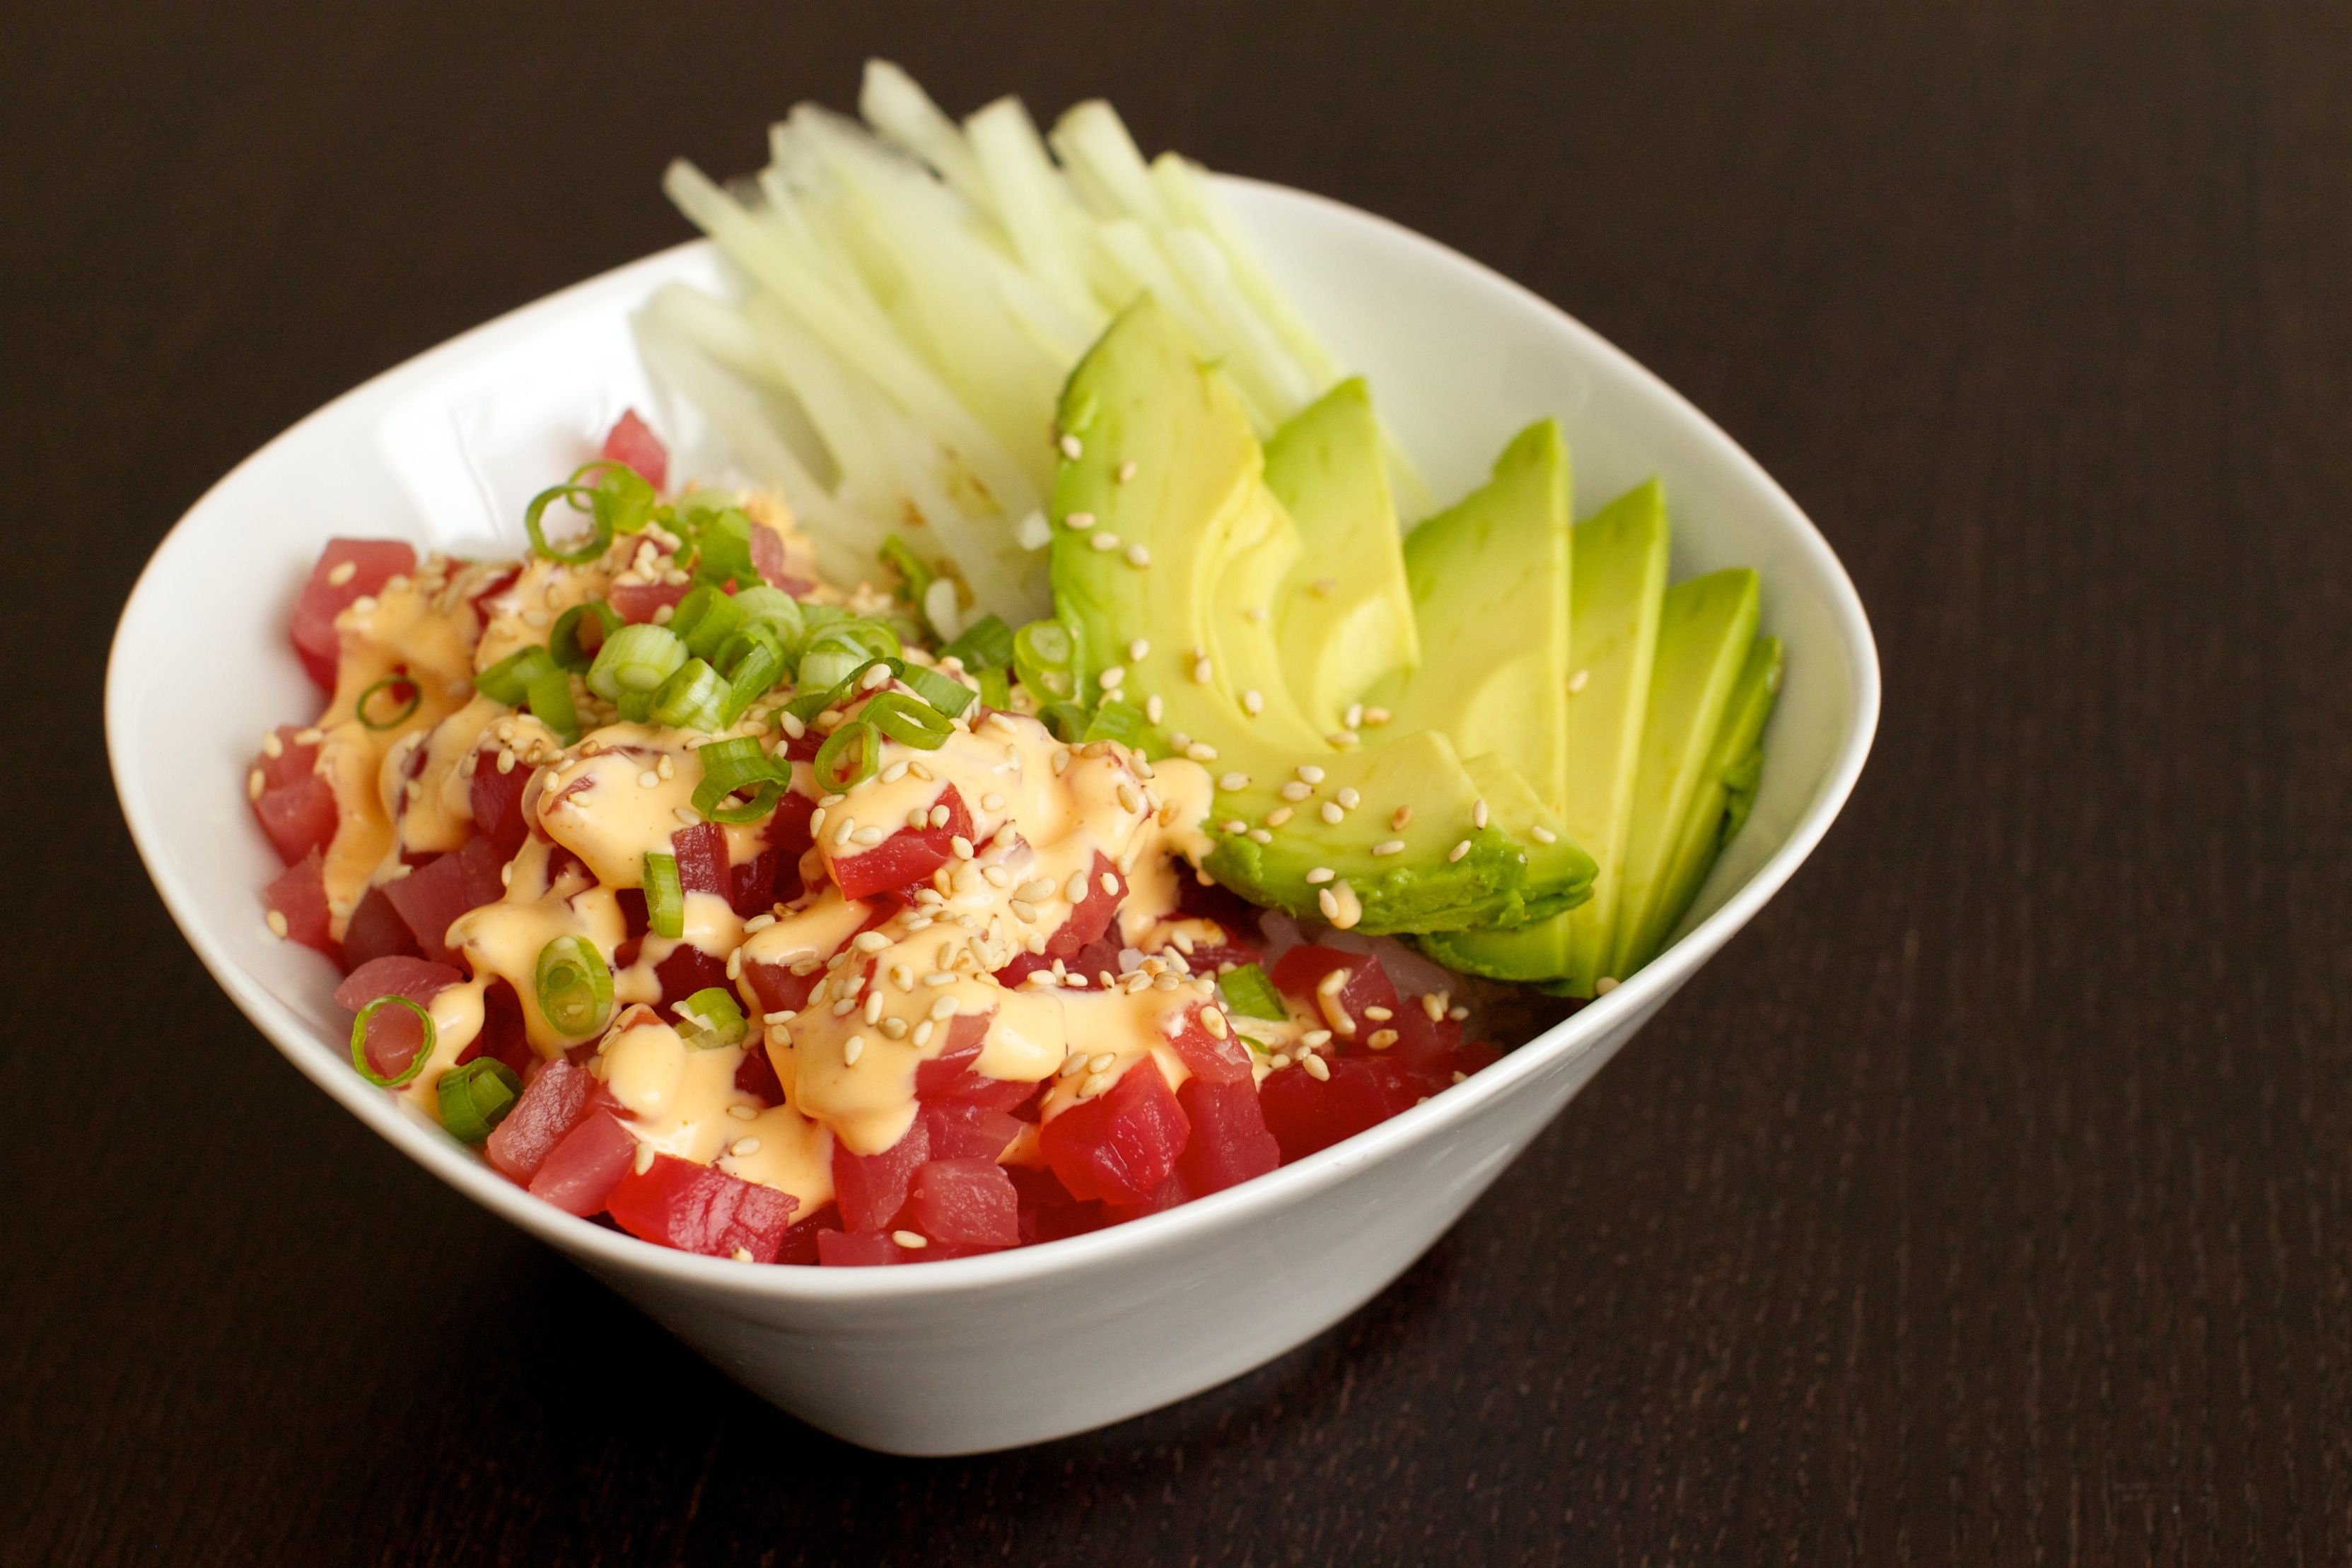 spicy tuna rice bowl---  good in small doses. make sure if using raw fish to cut into really tiny pieces. too weird otherwise. could do with imitation crab as well